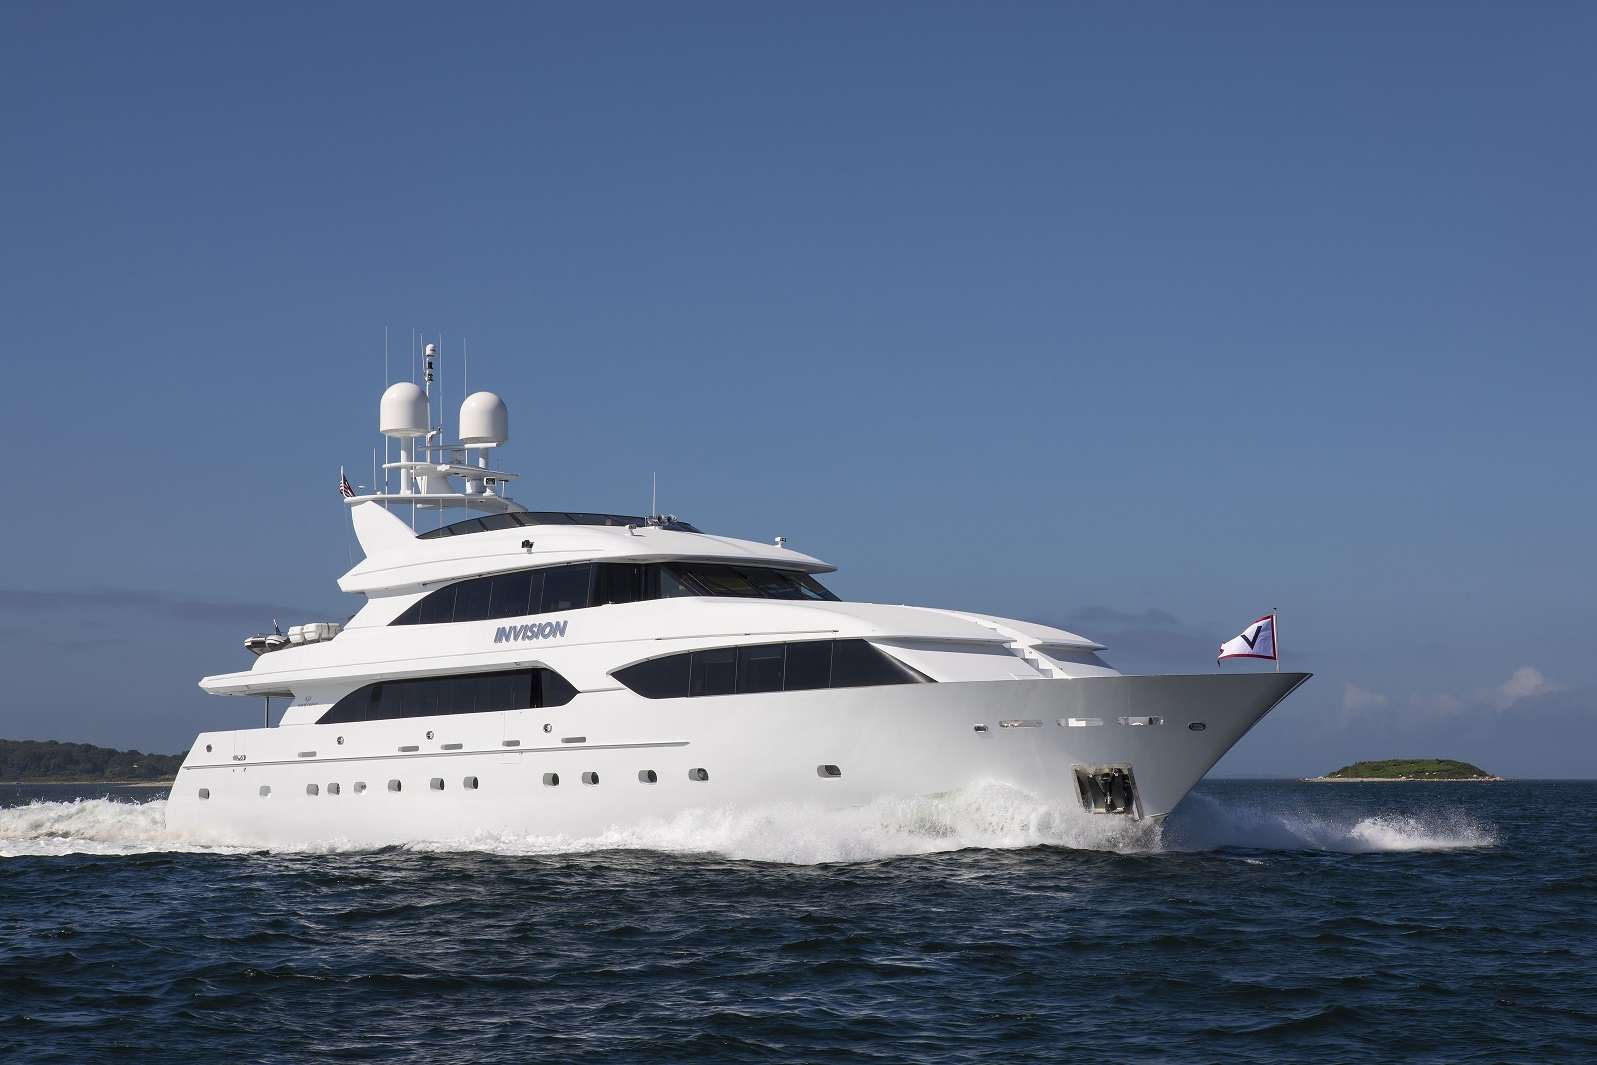 Main image of INVISION yacht